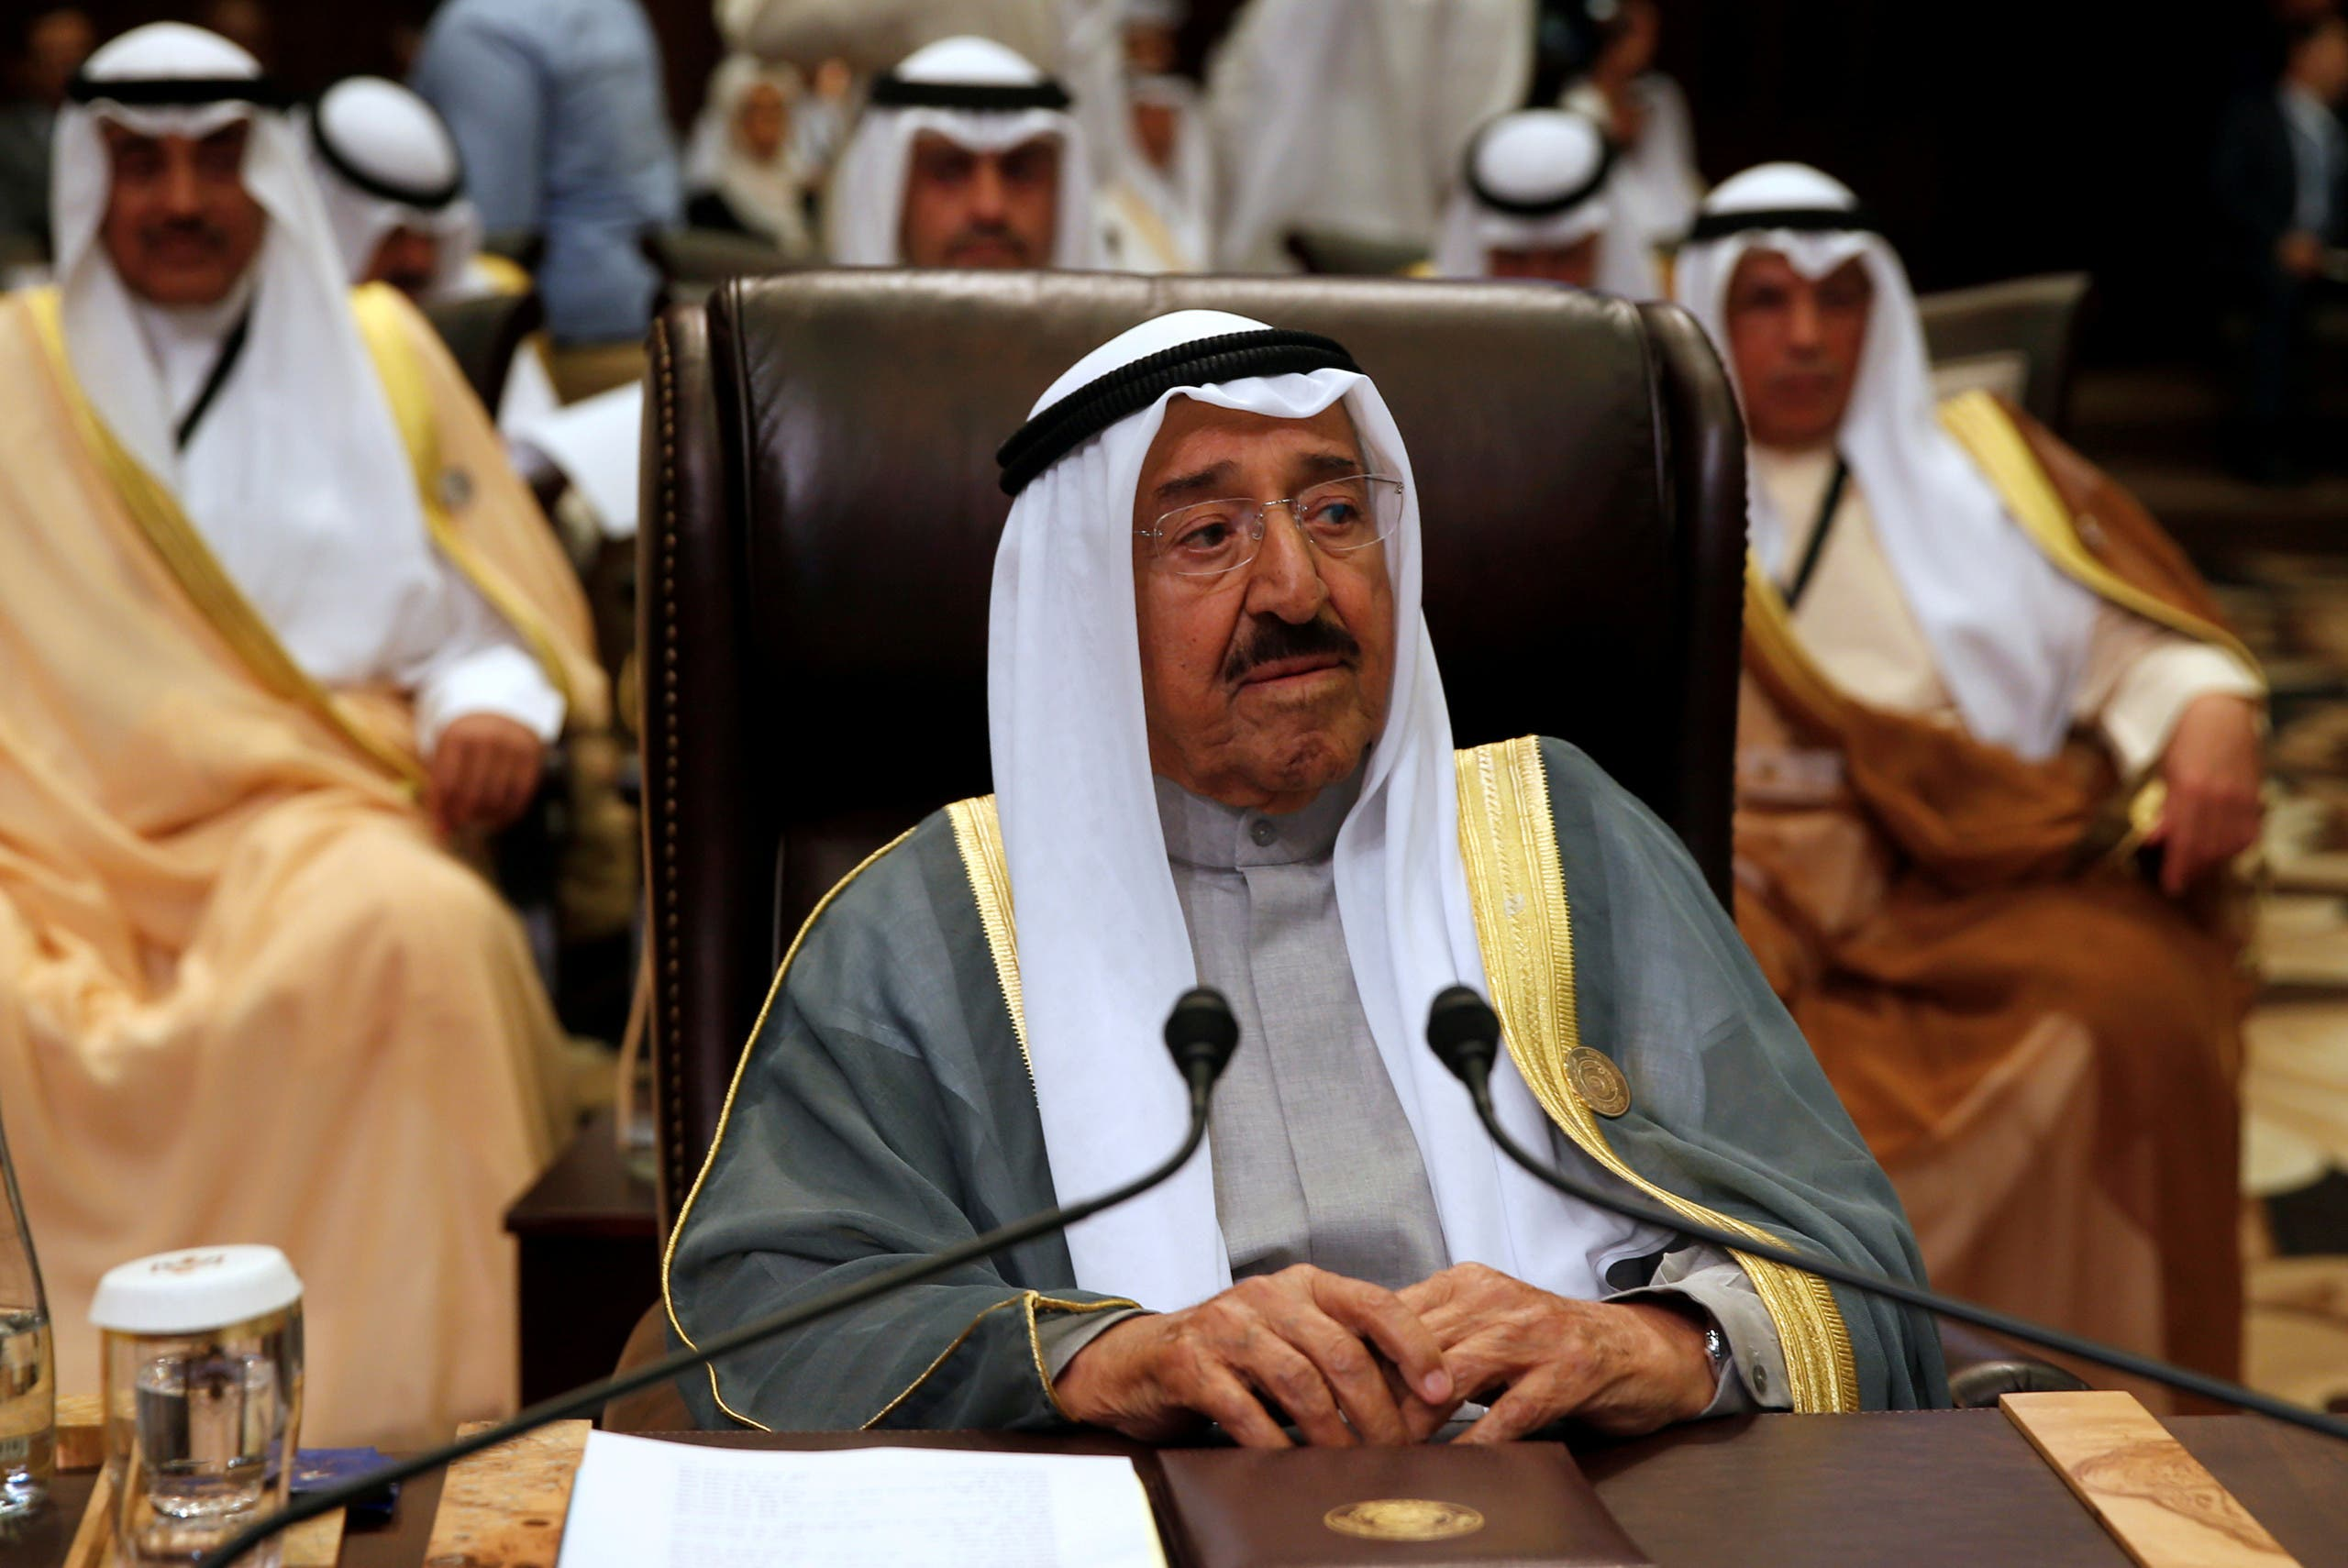 The late Emir of Kuwait Sabah al-Ahmad al-Jaber al-Sabah attends the 28th Ordinary Summit of the Arab League at the Dead Sea. (File photo: Reuters)